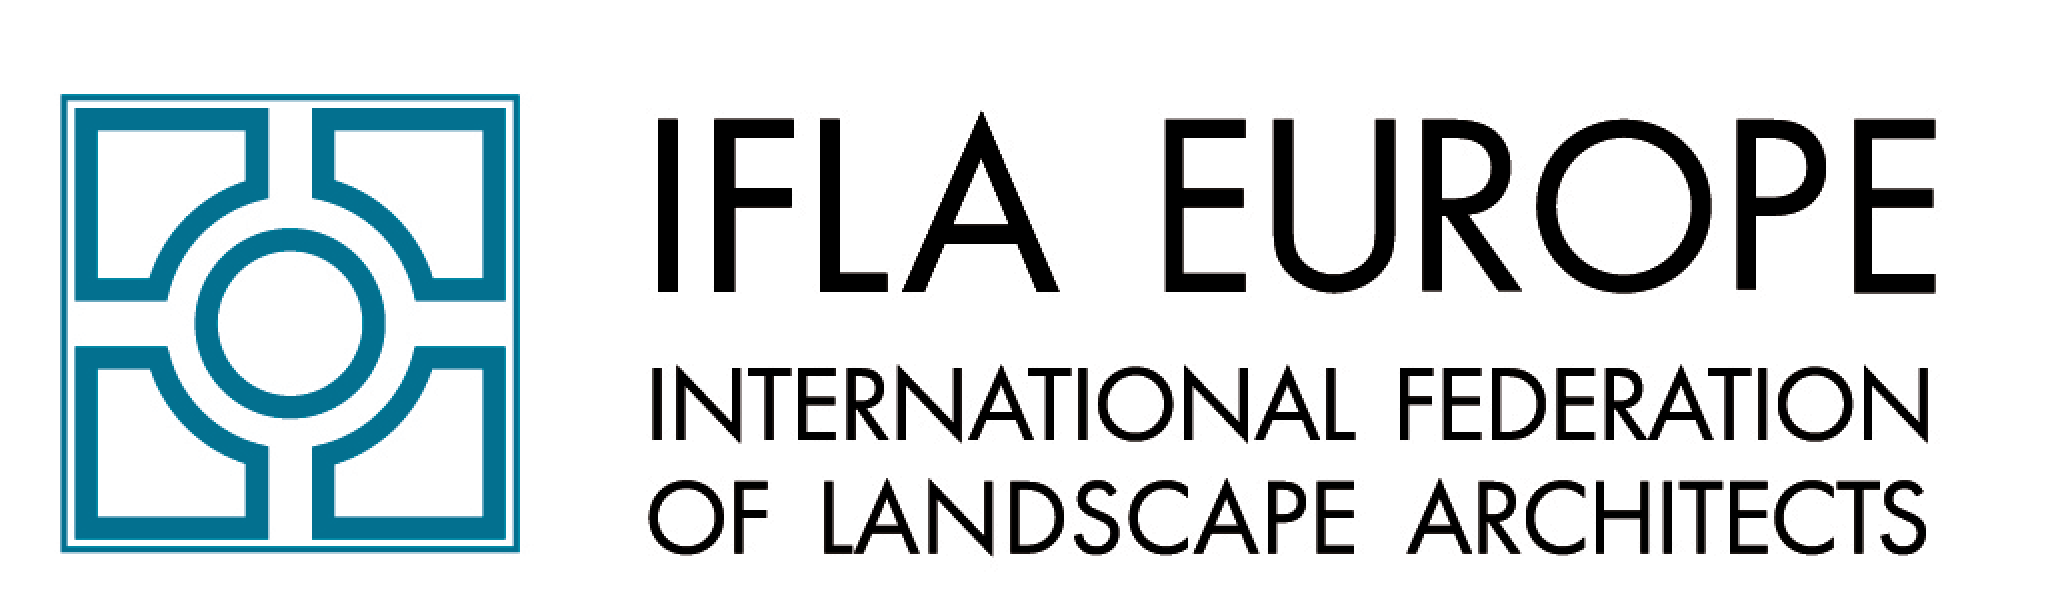 2020 IFLA EUROPE General Assembly to be organised online 17 October 2020!